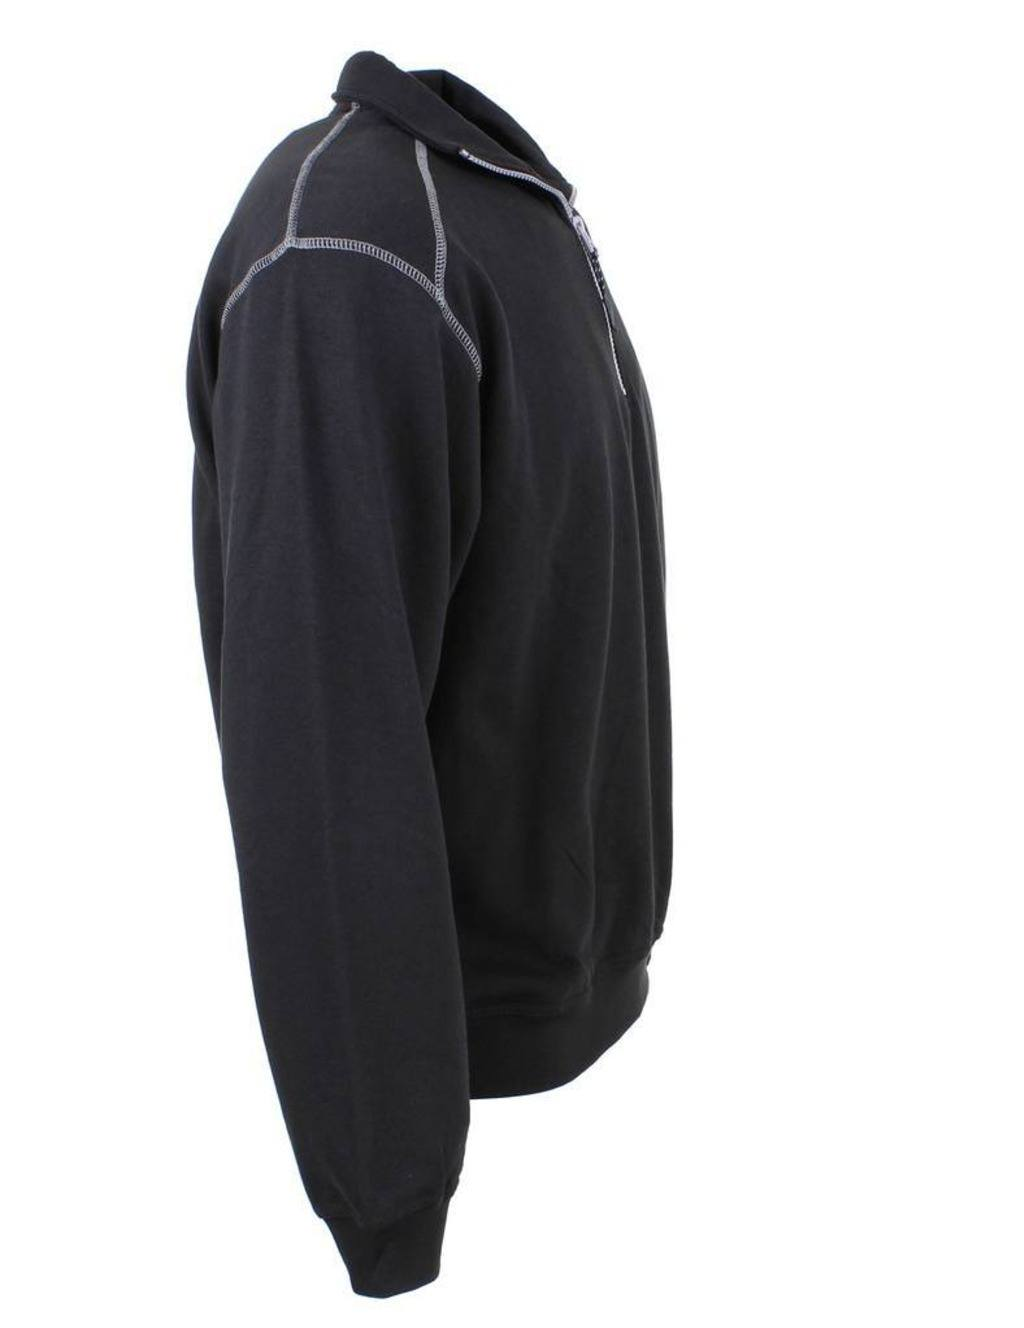 FREDERIK Zip Sweater